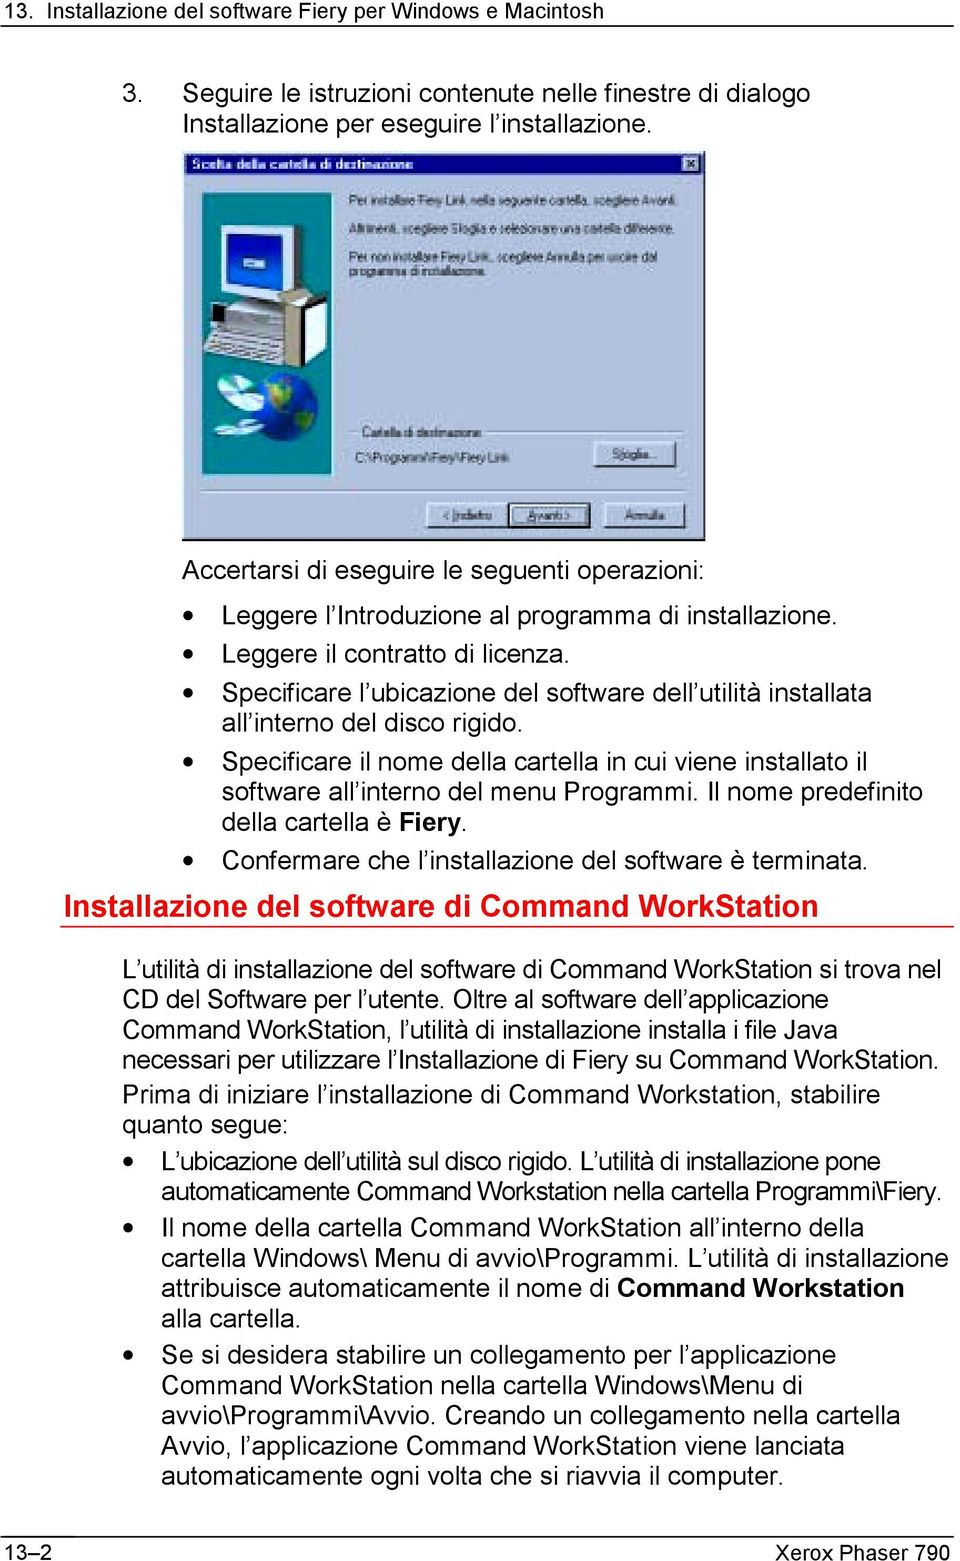 Specificare l ubicazione del software dell utilità installata all interno del disco rigido. Specificare il nome della cartella in cui viene installato il software all interno del menu Programmi.